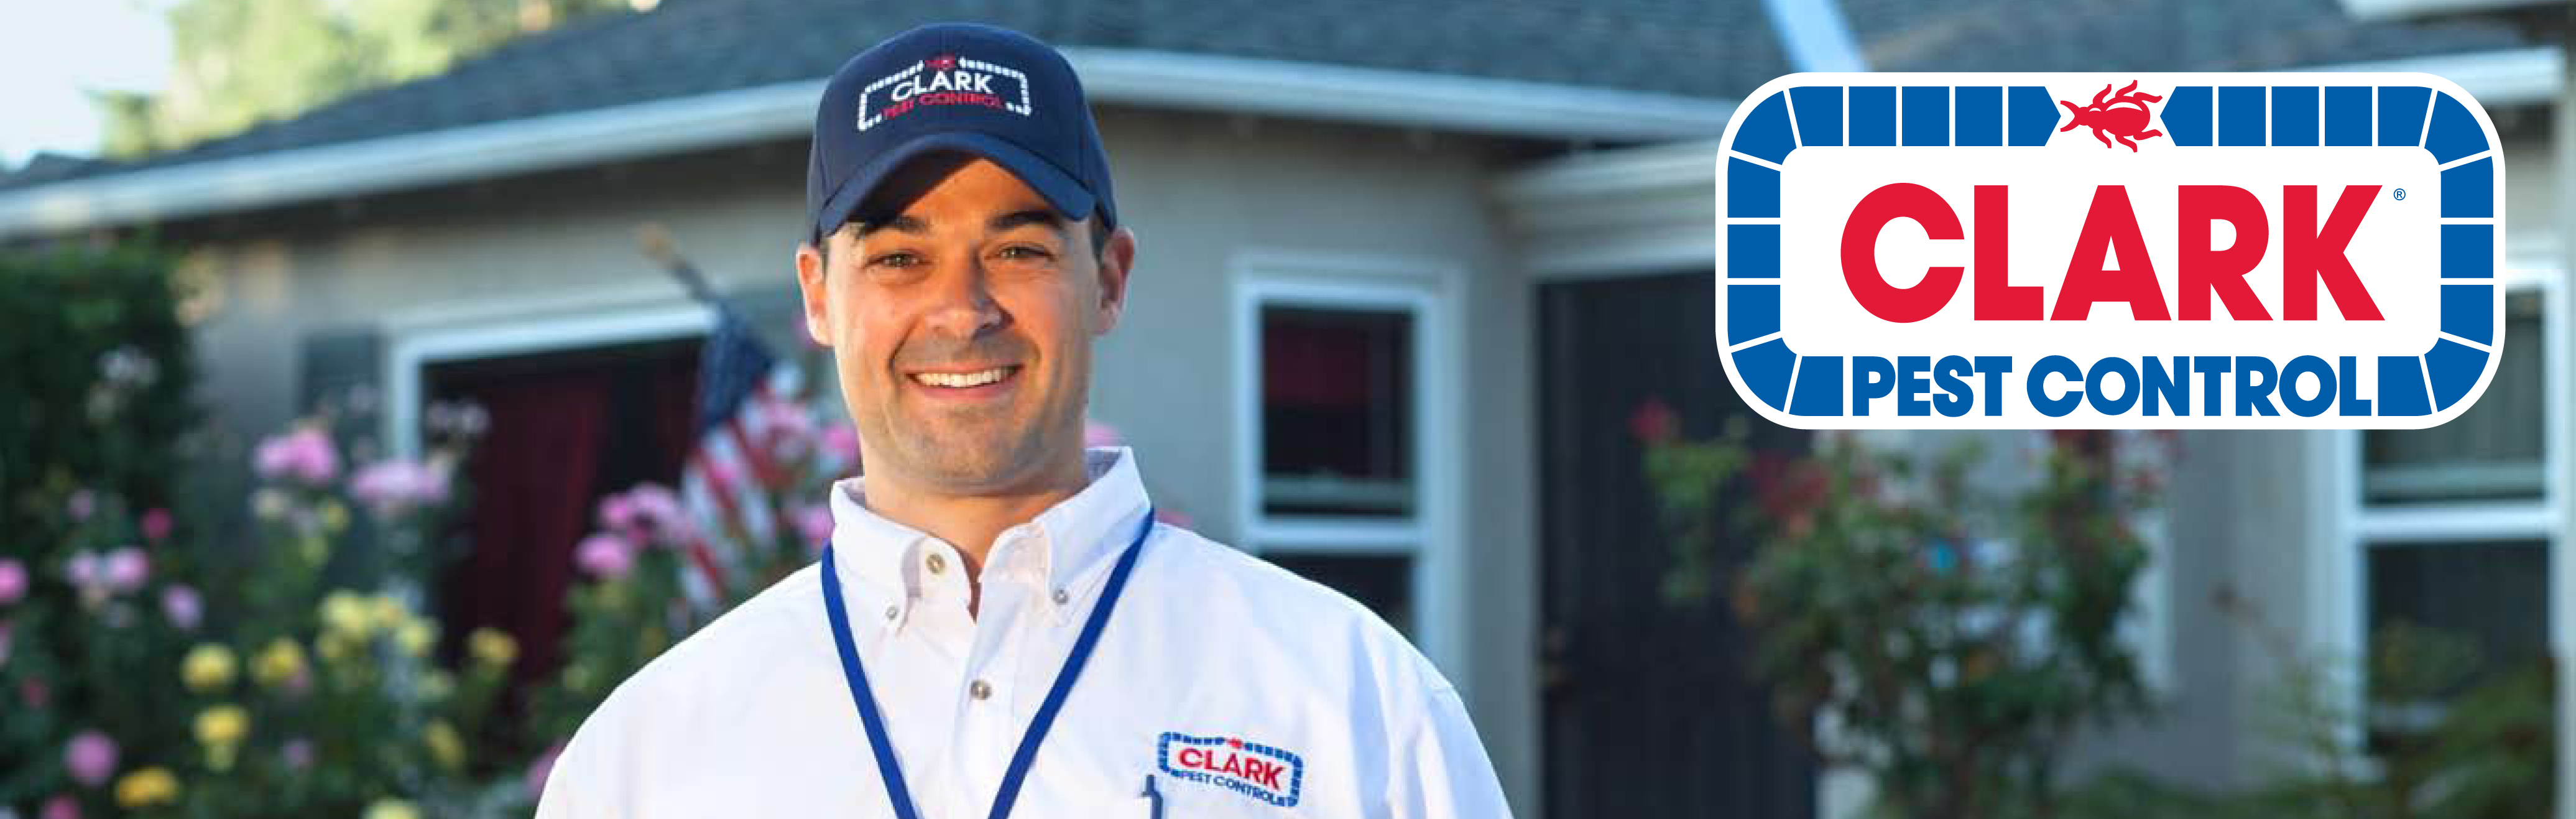 Clark Pest Control reviews | Home & Garden at 199 Topaz Street - Milpitas CA